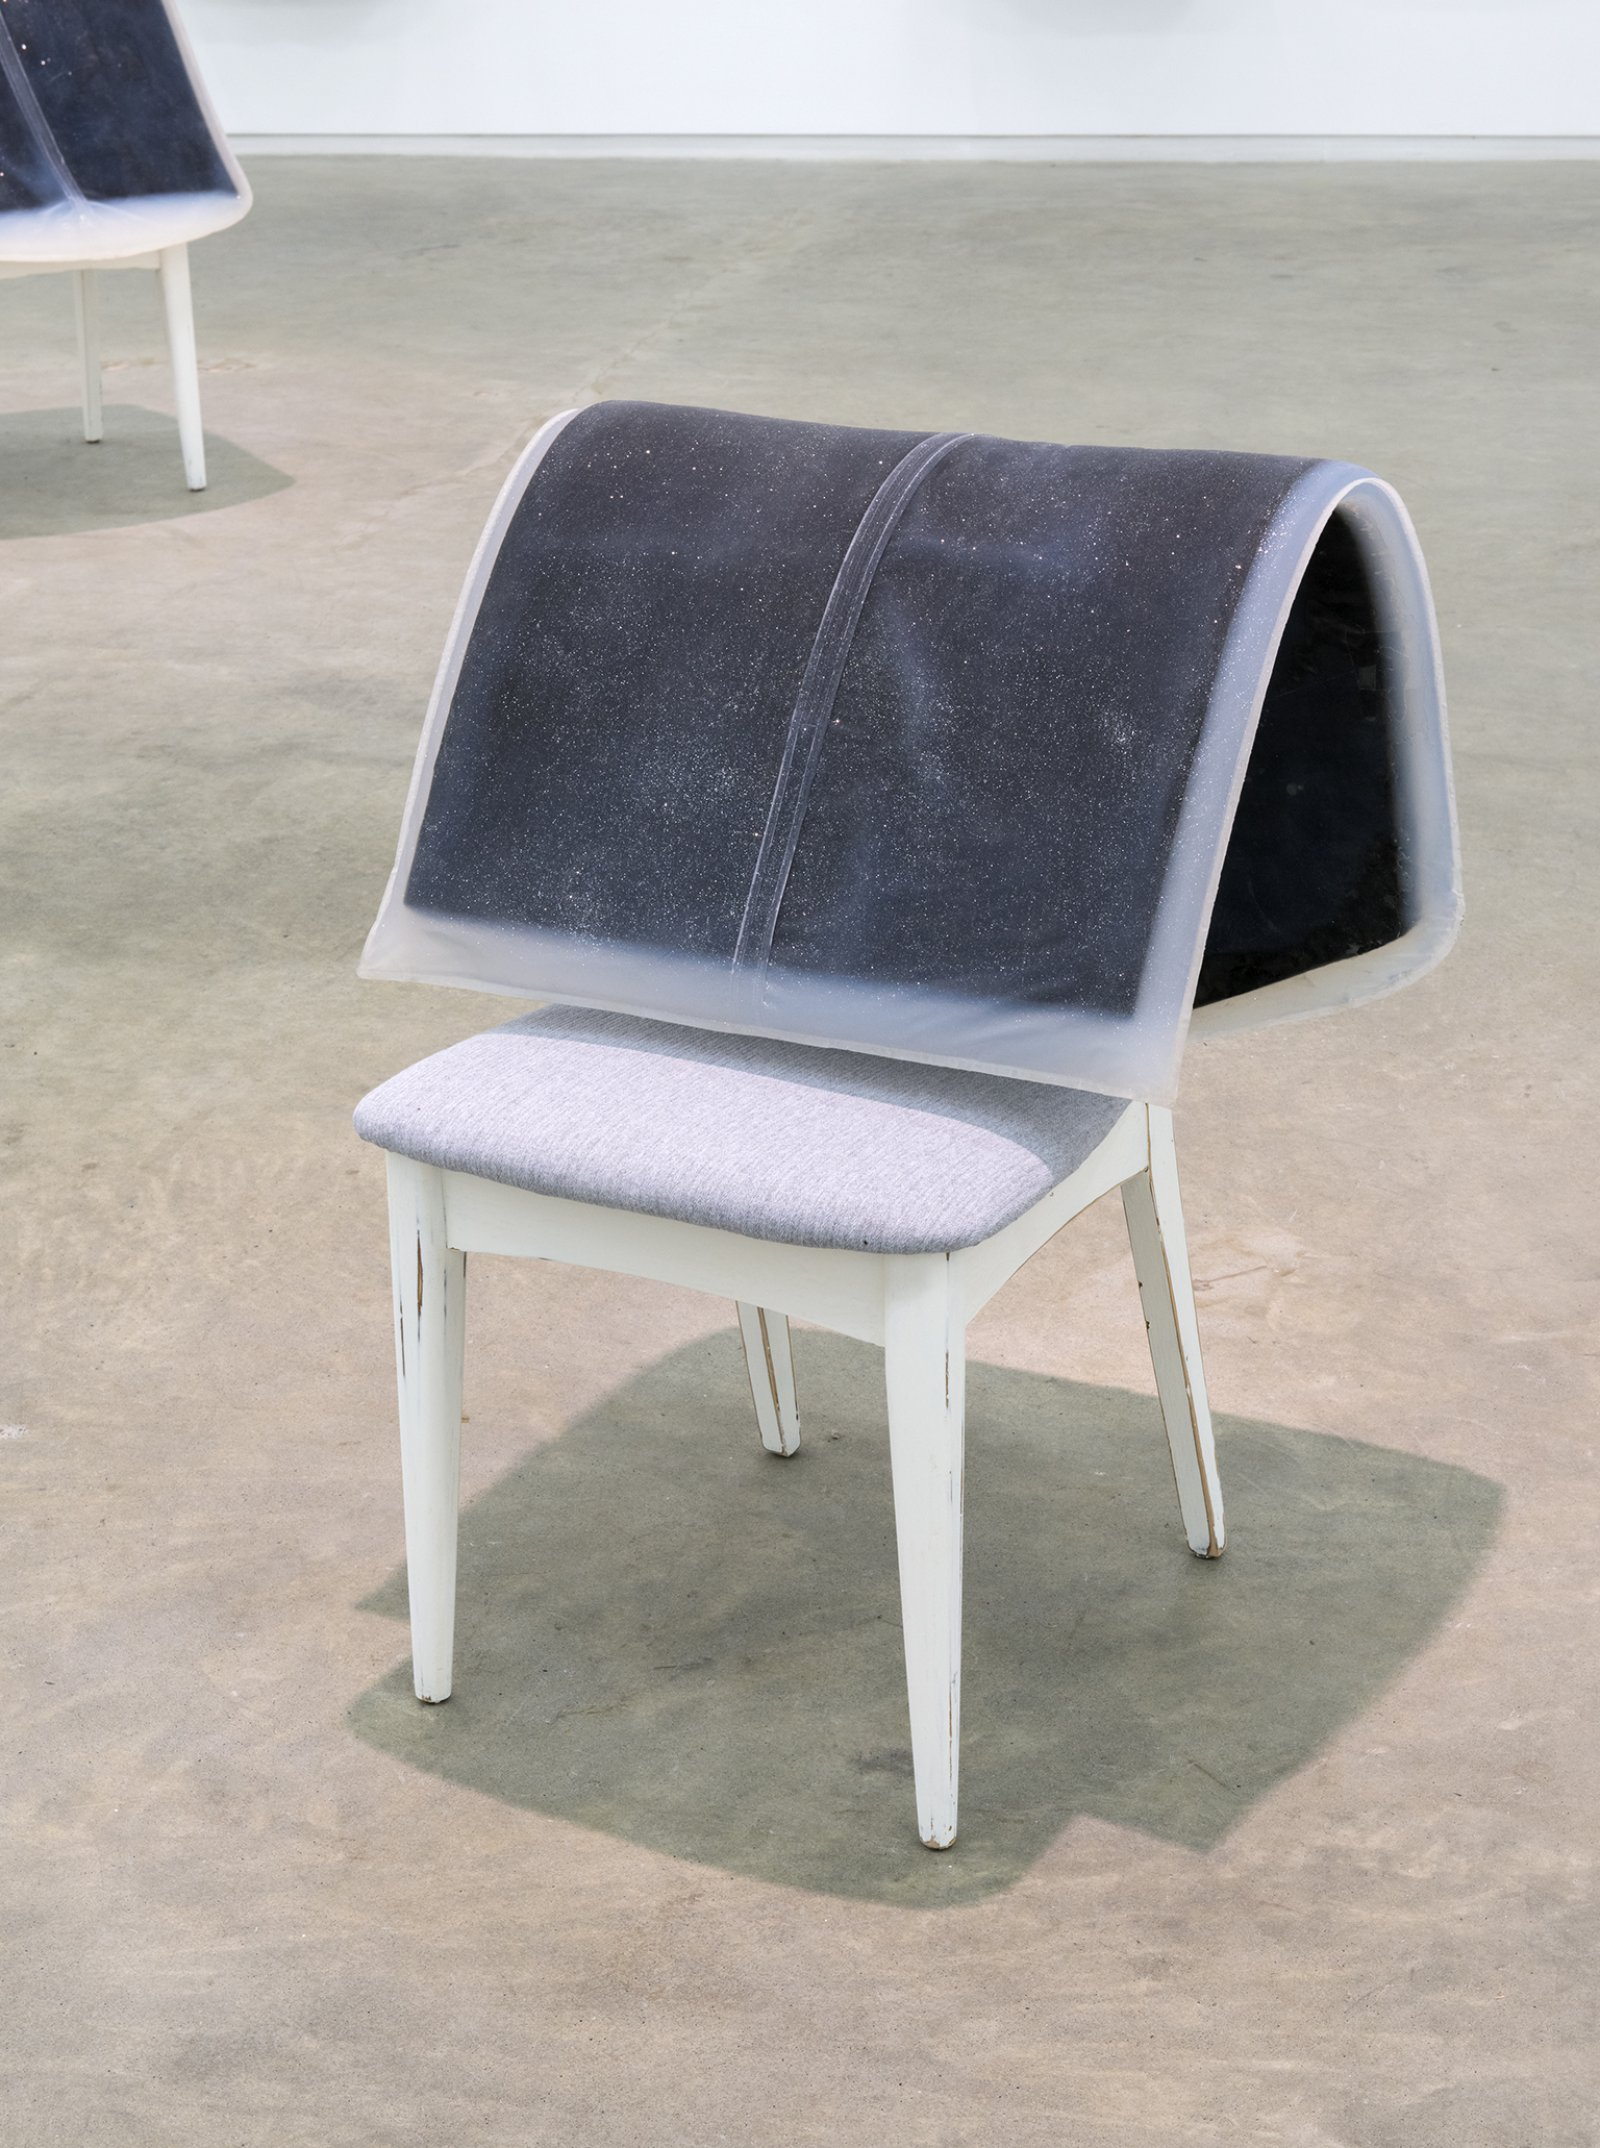 Liz Magor, Formal II, 2012, platinum-cure silicone rubber, chair, 32 x 24 x 26 in. (81 x 61 x 66 cm)   by Liz Magor